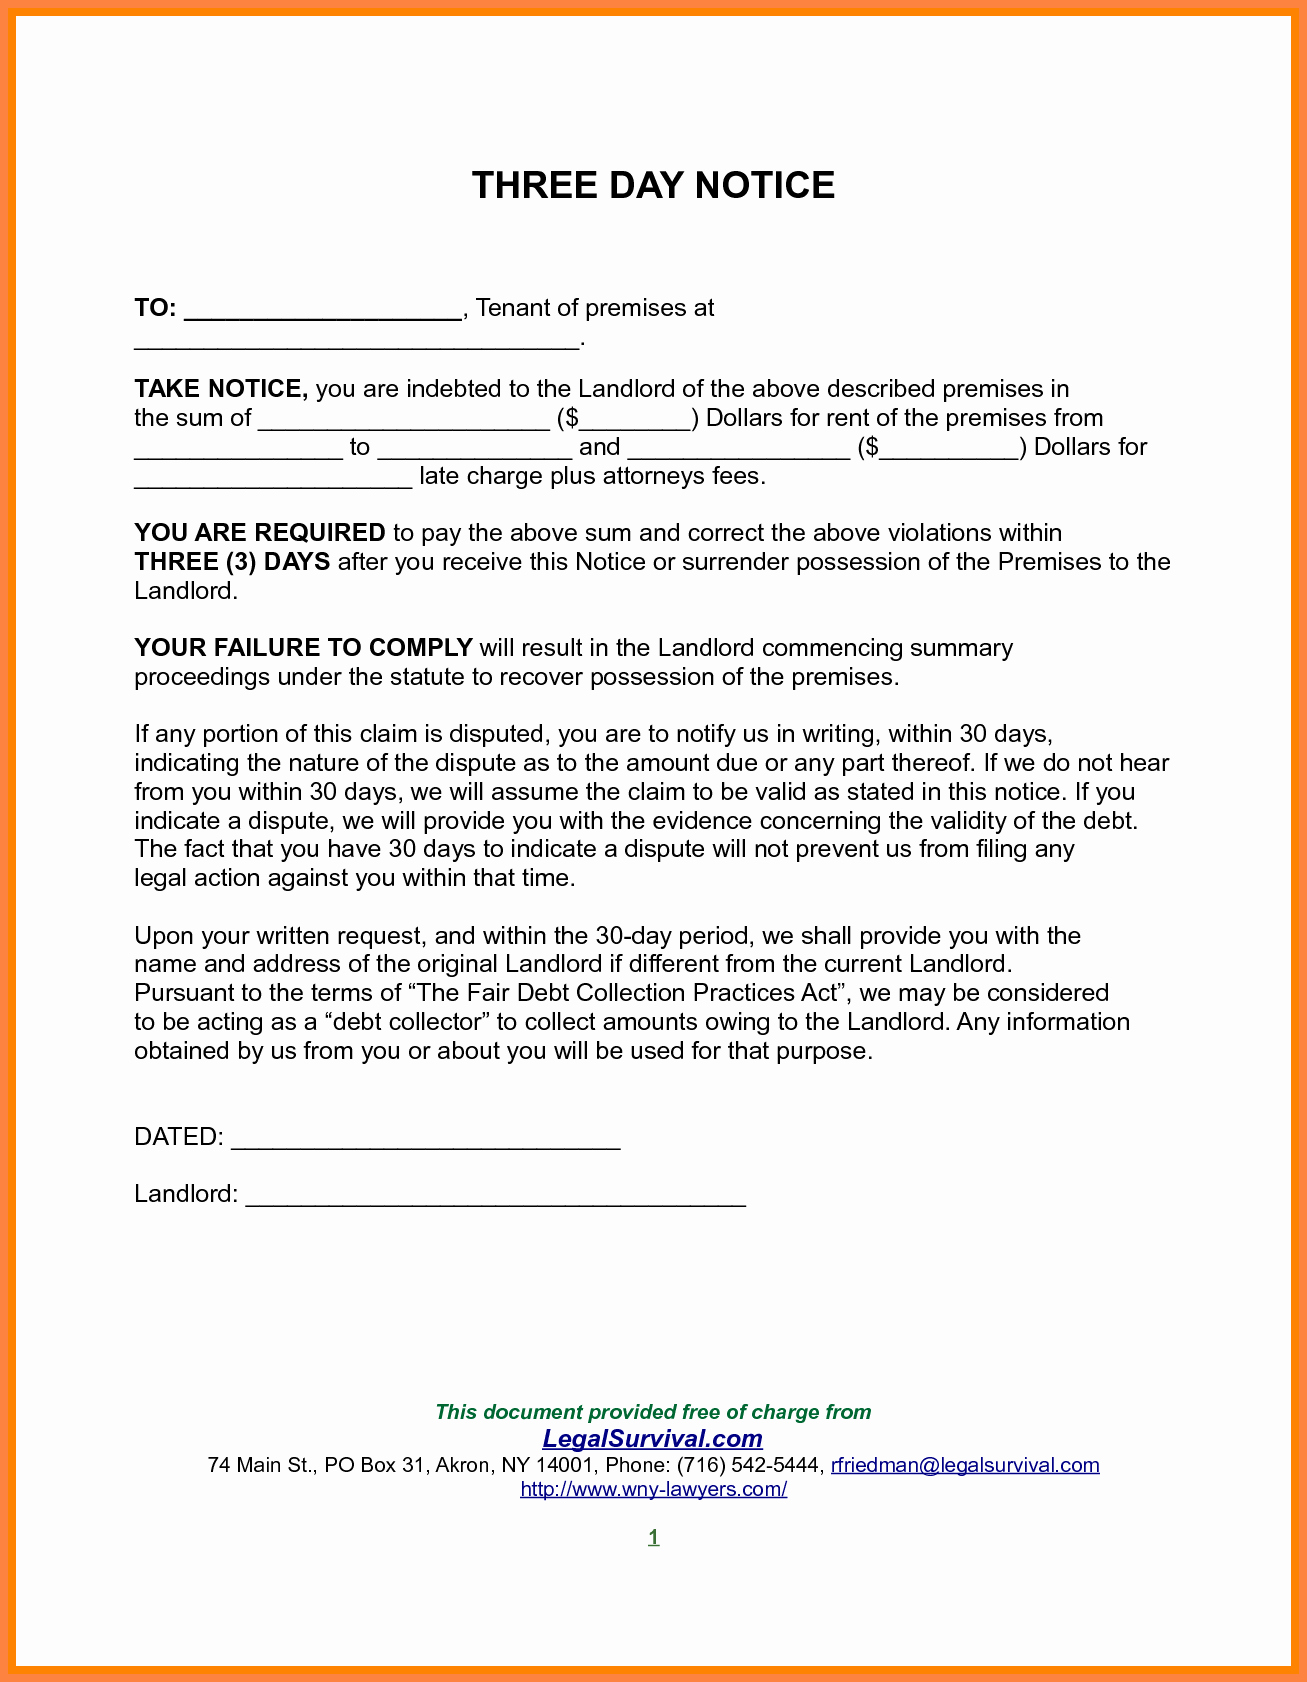 30 Day Notice California Template Elegant 10 Example Of 30 Day Notice to Tenant